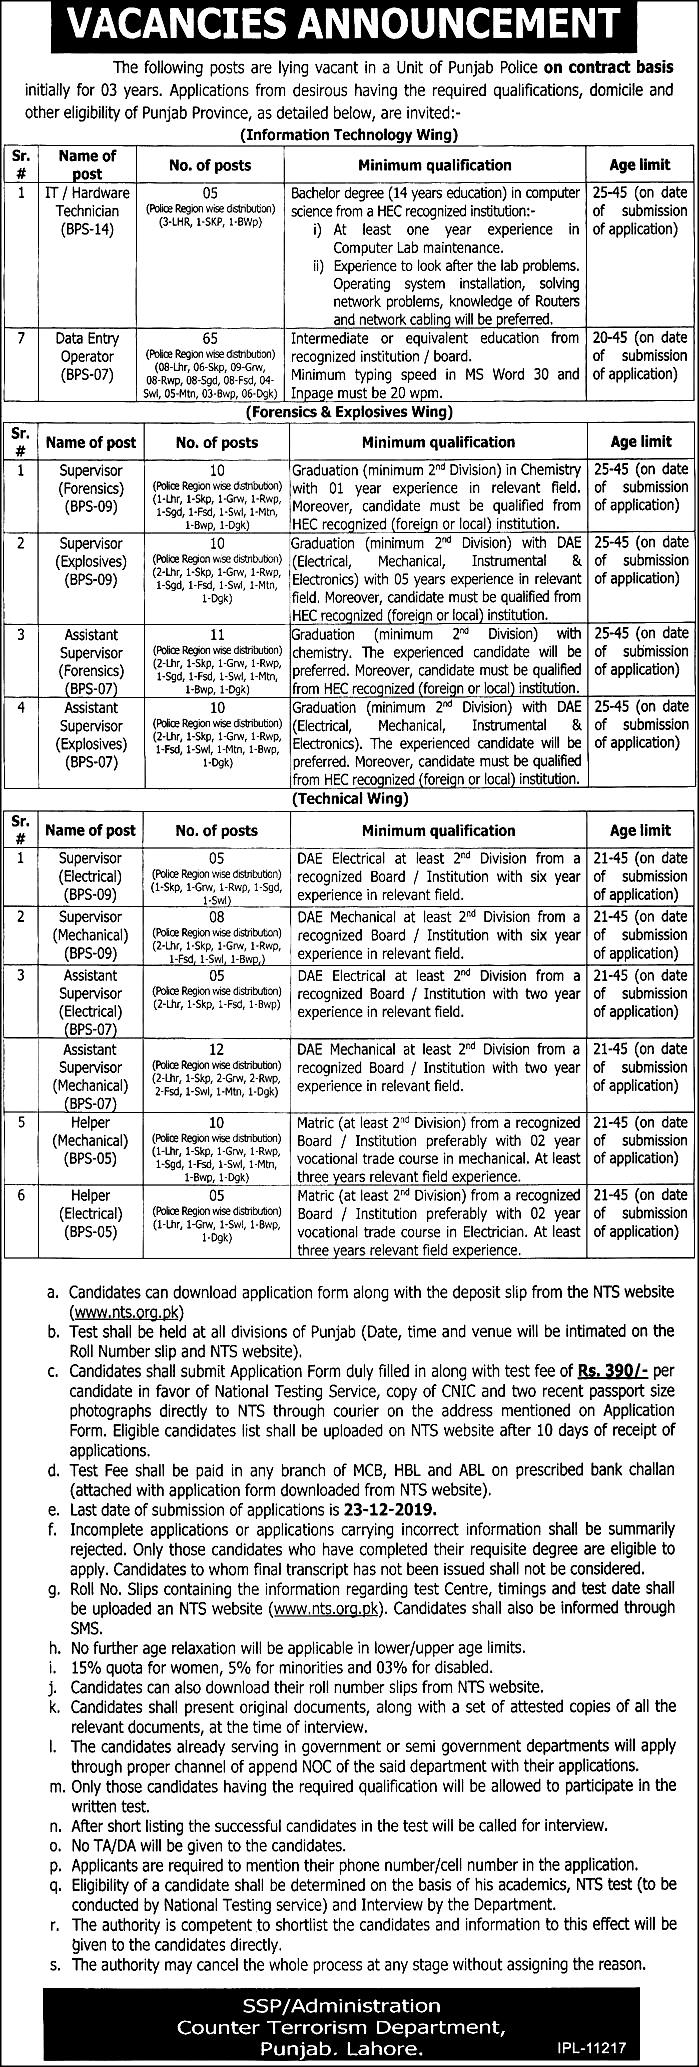 Punjab Police Data Entry Operator NTS Jobs 2021 Download Application Form